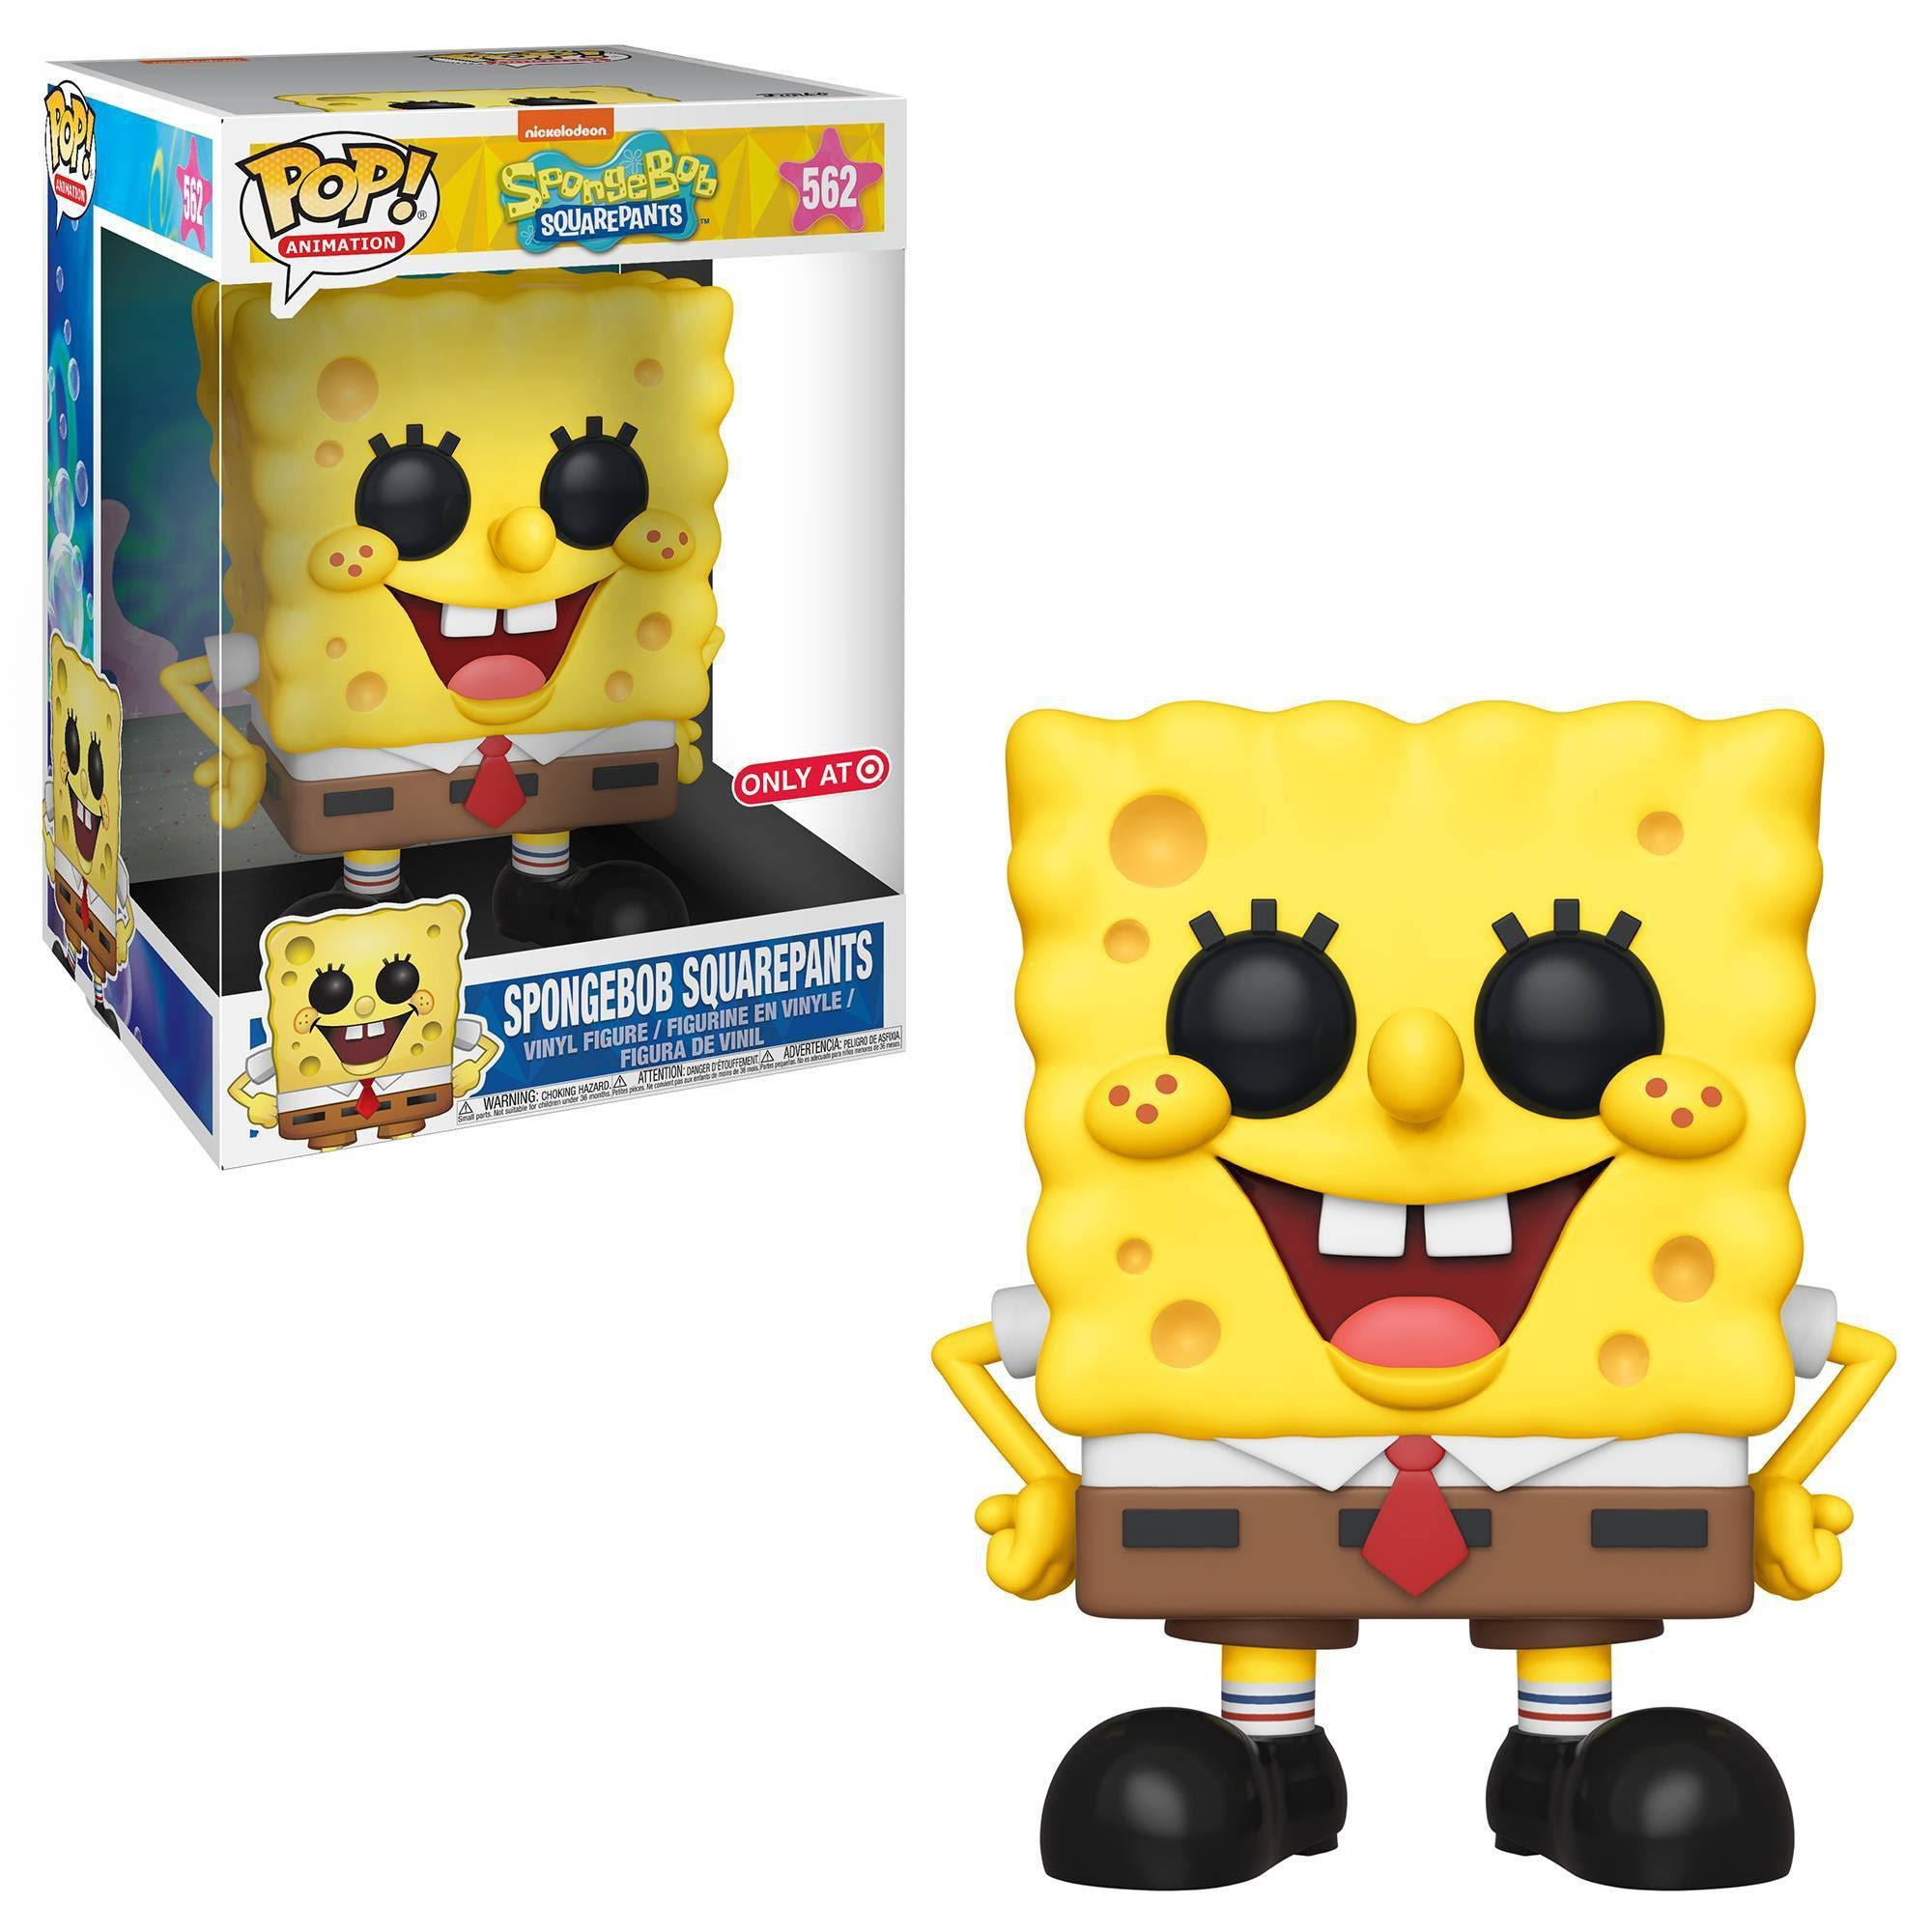 "Funko Pop Exclusive Vinyl Figure - 10"", SpongeBob SquarePants"